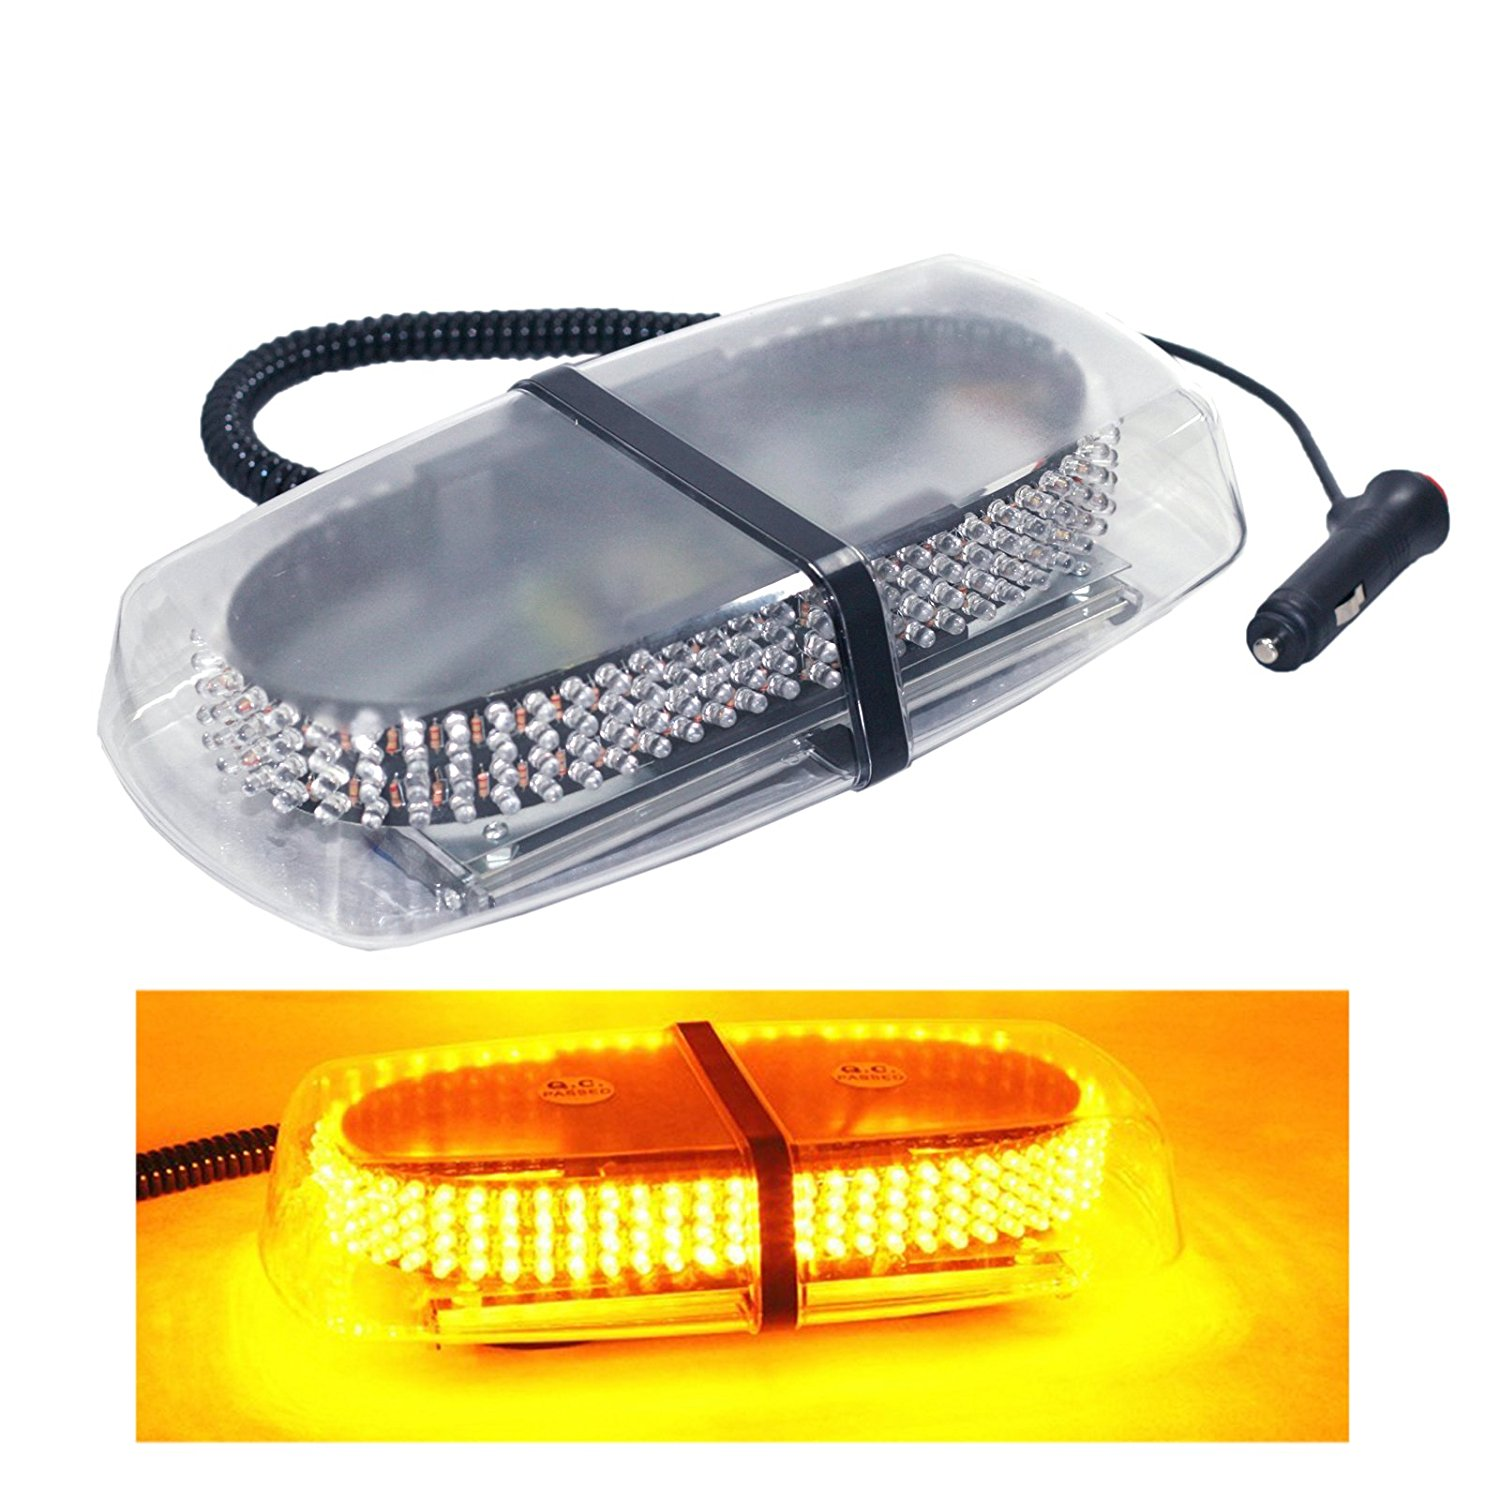 240 LED Light Bar-Emergency Vehicle Lights for Hazard Warning- Amber Strobe lights for Truck &Car with Magnetic Base